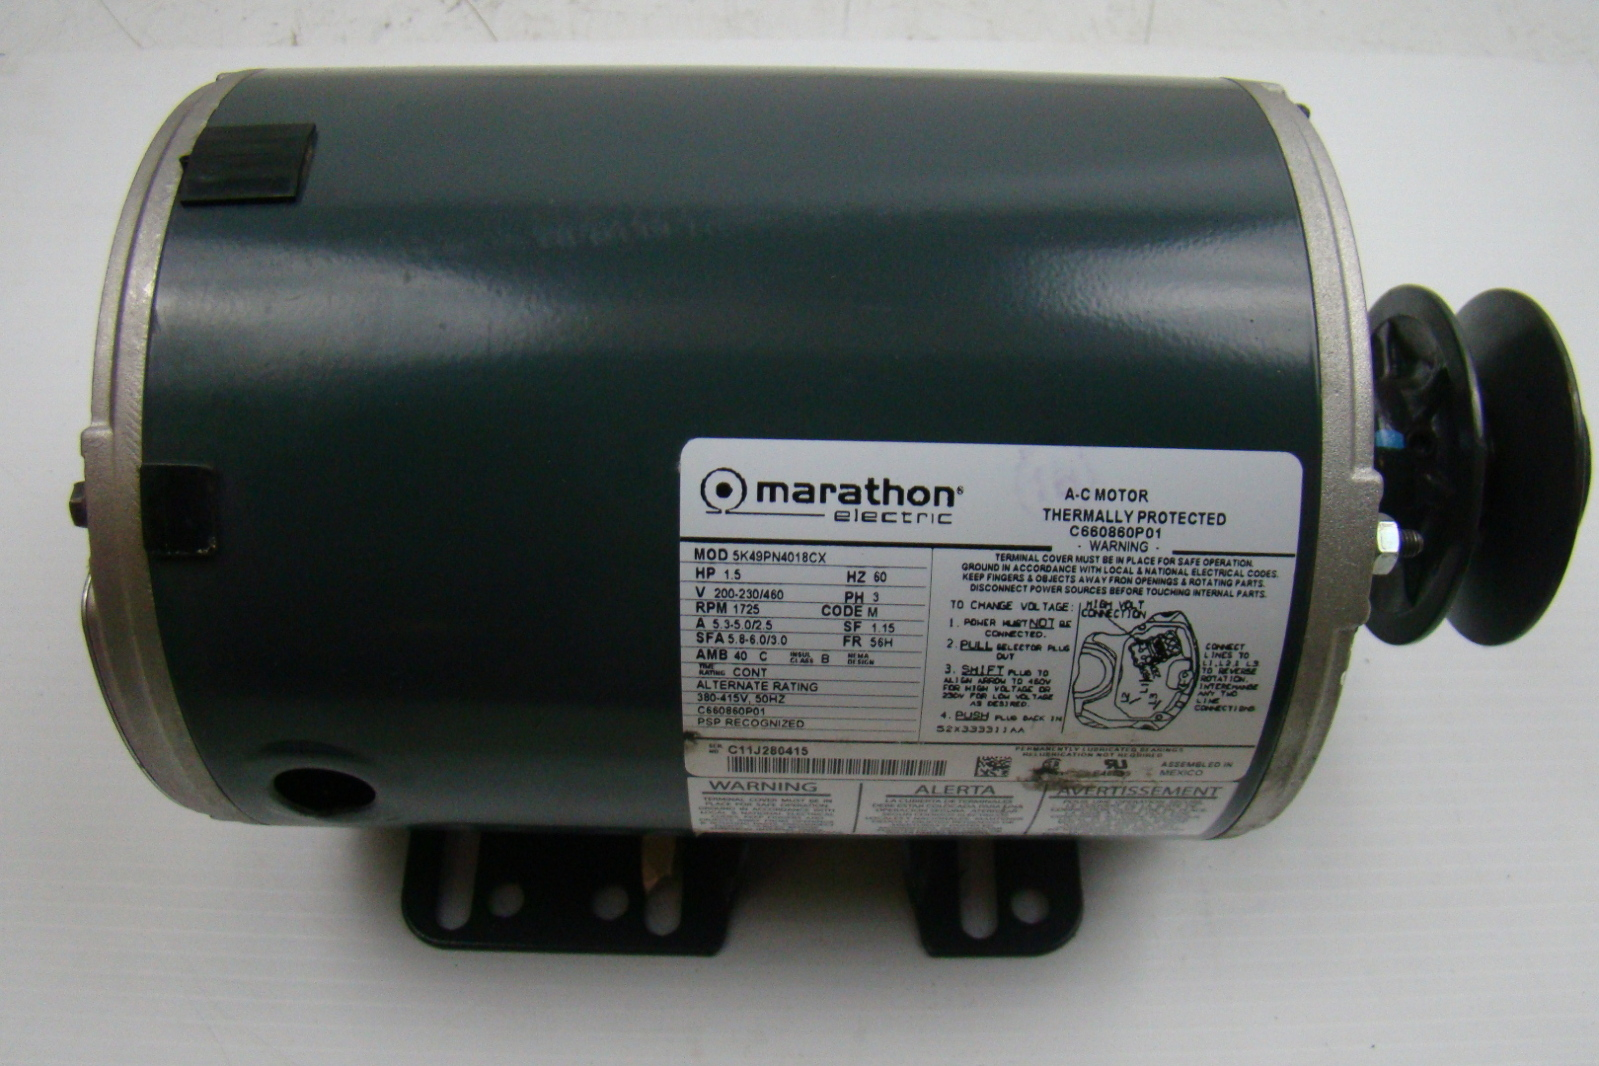 Marathon Electric Motor 1 1 2 Hp 200 230 460v 5k49pn4018cx